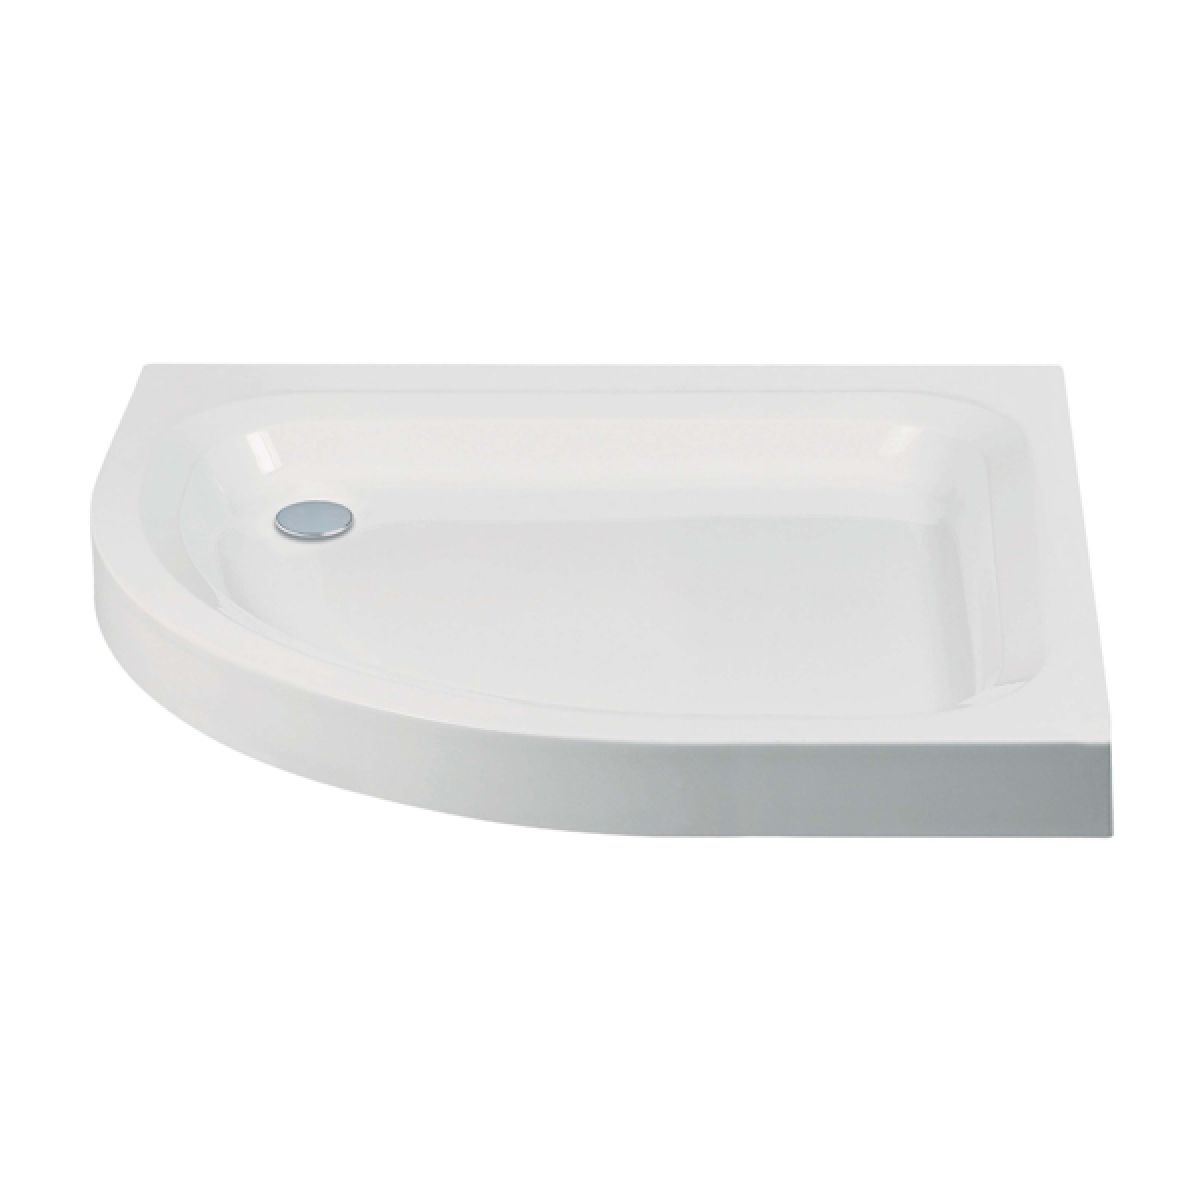 Frontline Standard Offset Quadrant Shower Tray 900 x 760mm Left Handed